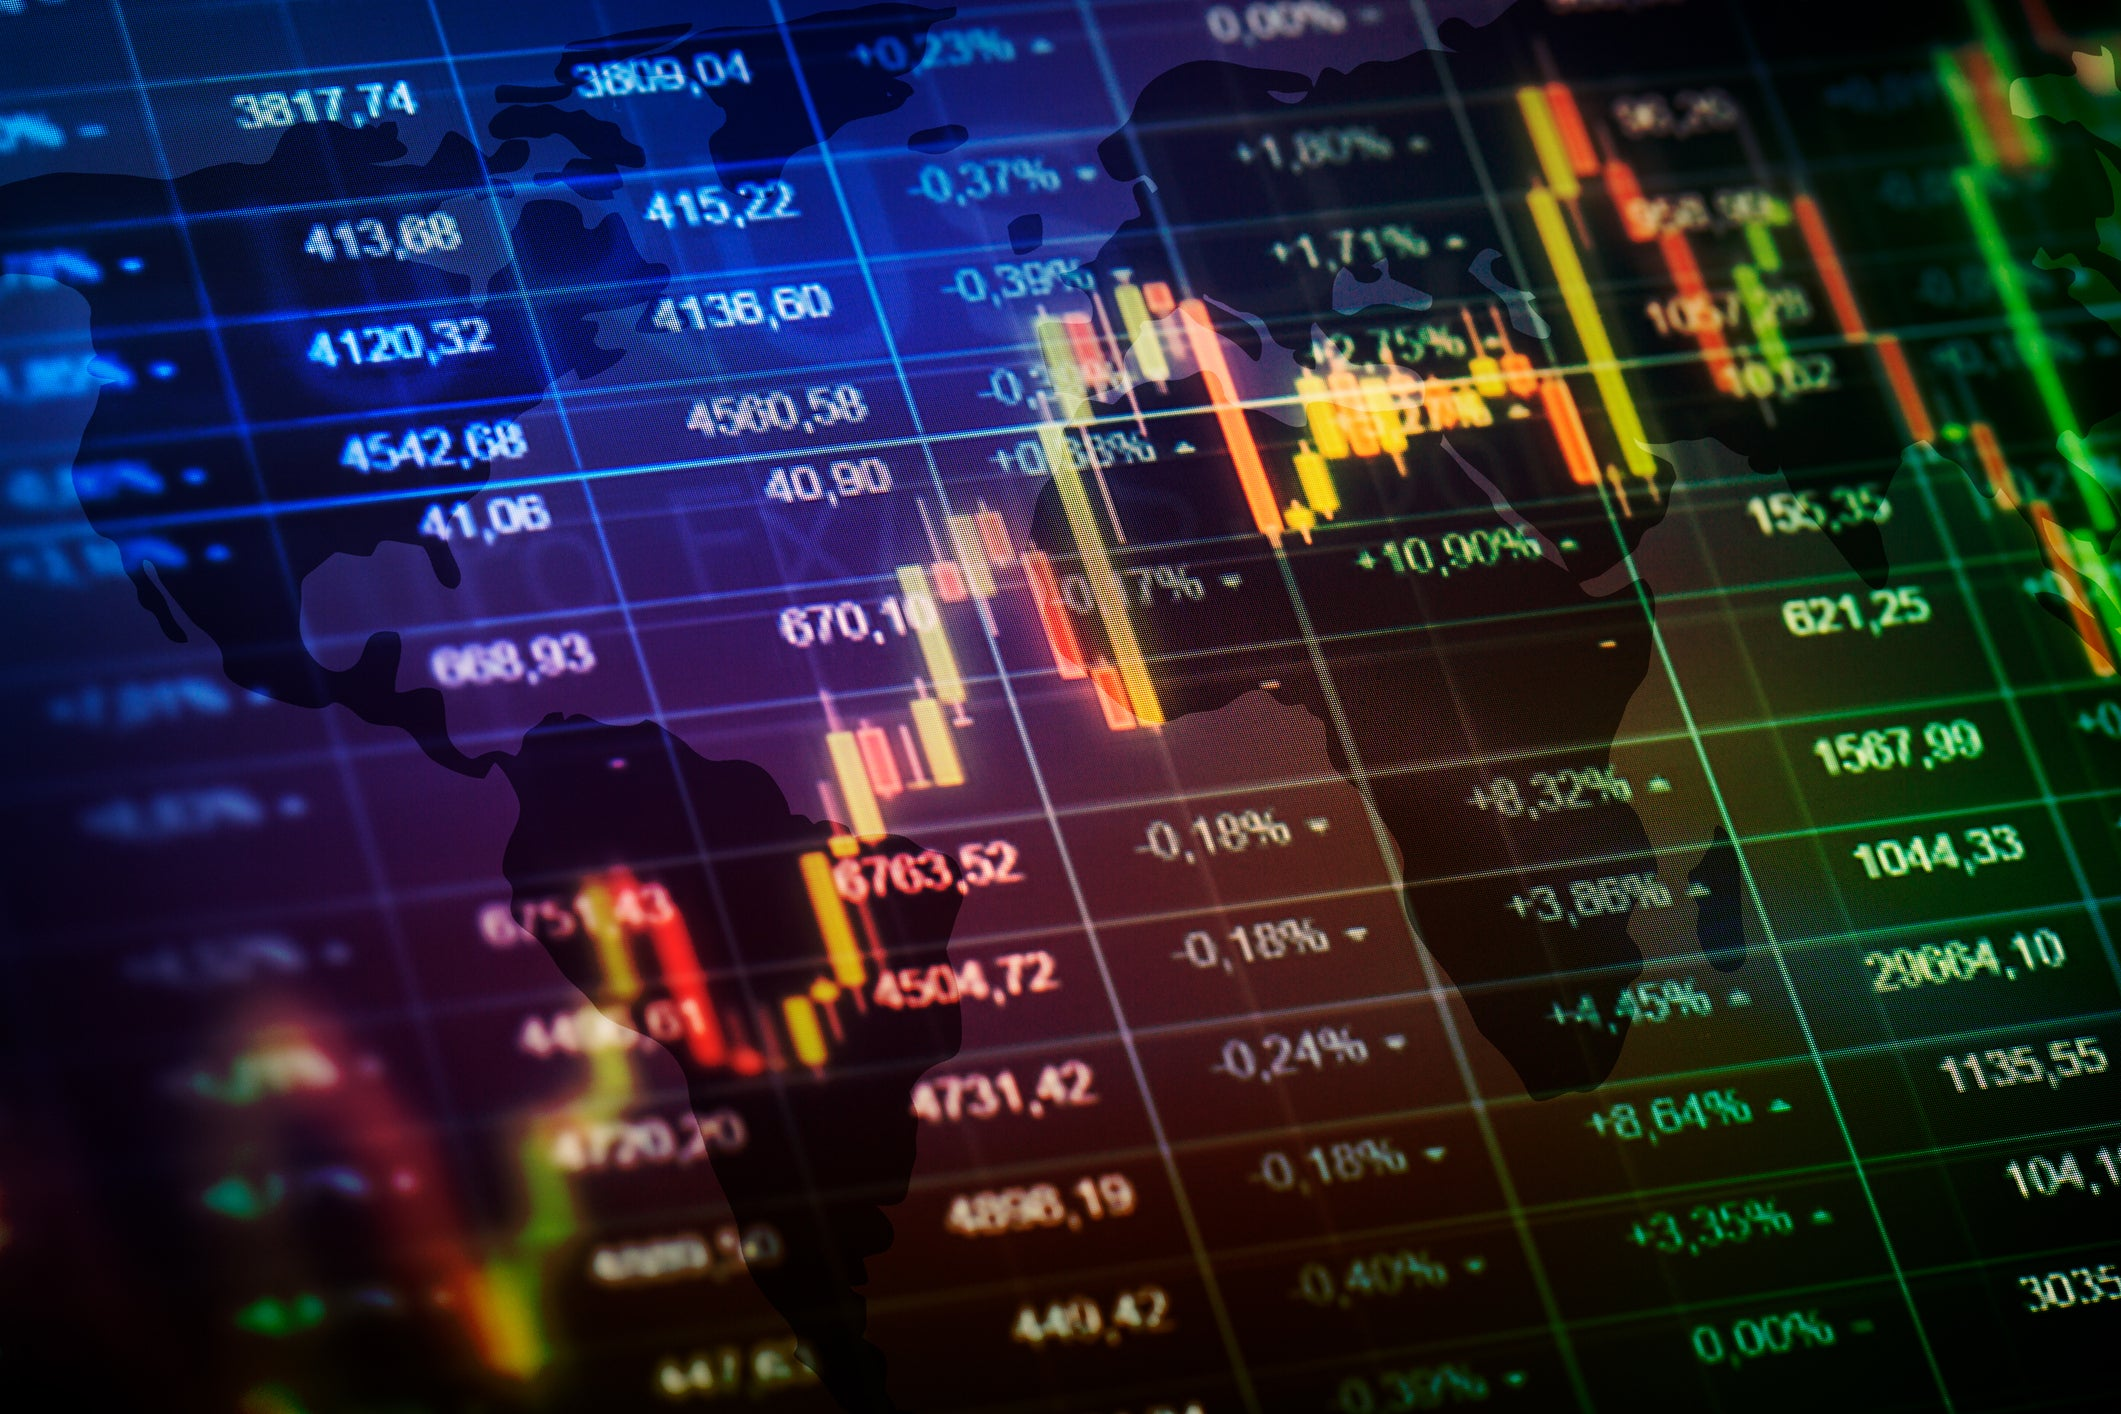 Why Is The Stock Market Price Rising Despite The Covid-19